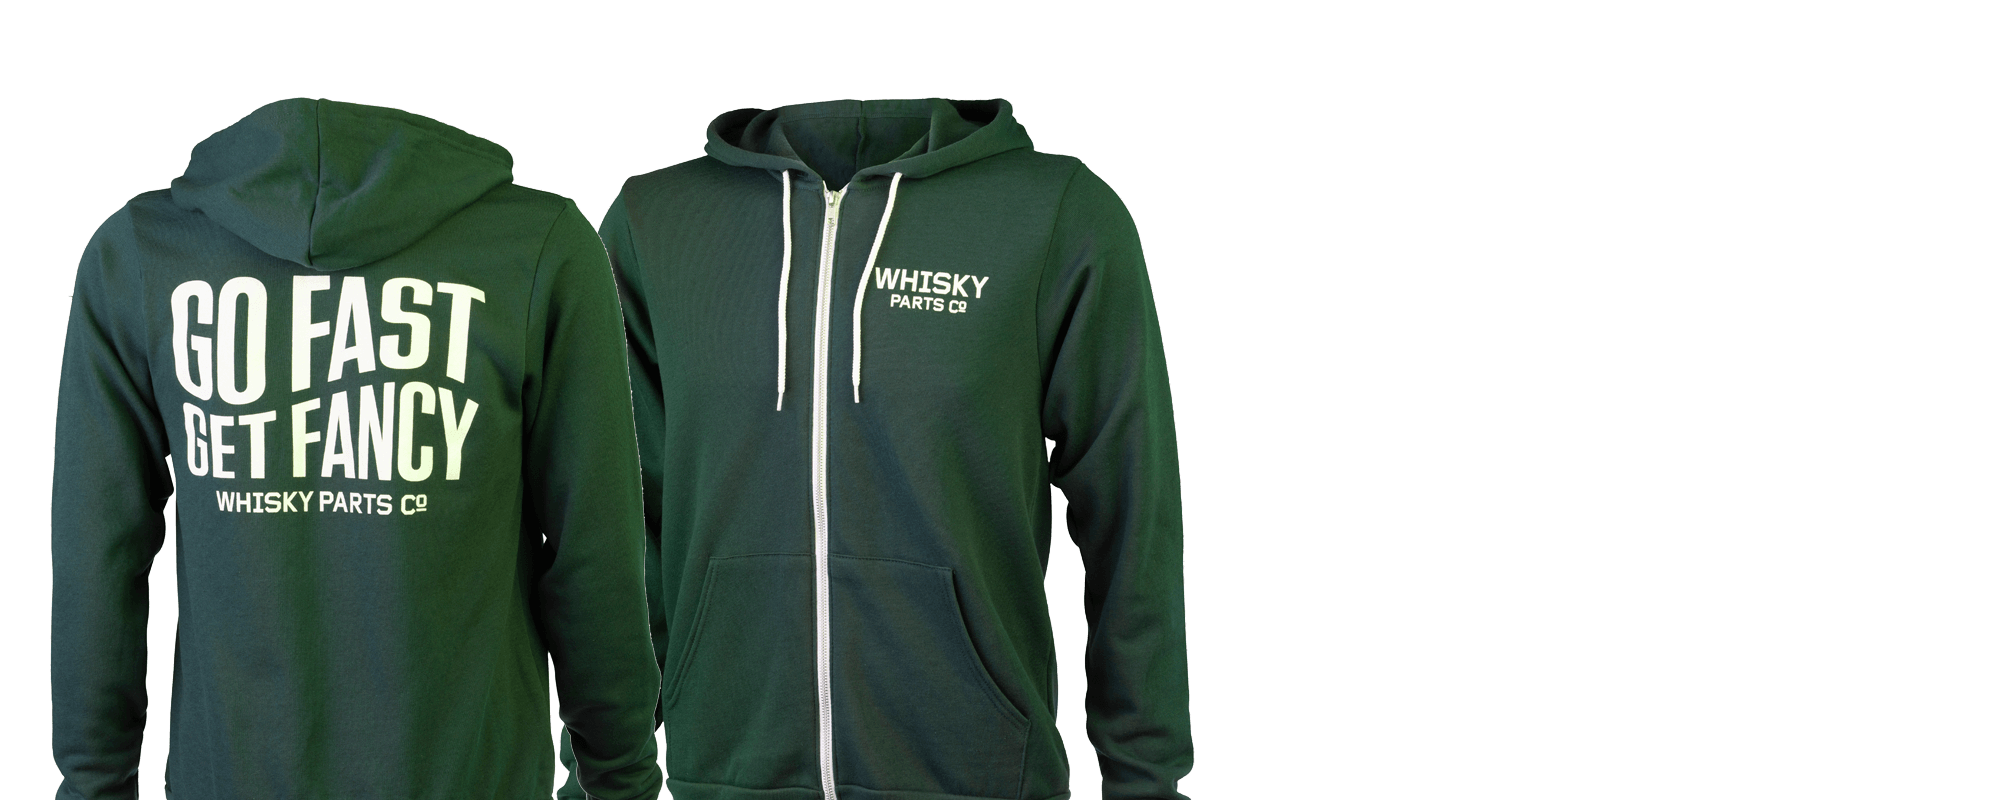 Whisky Parts Co Go Fast Get Fancy Hoodie - Green and White - Front and Back View